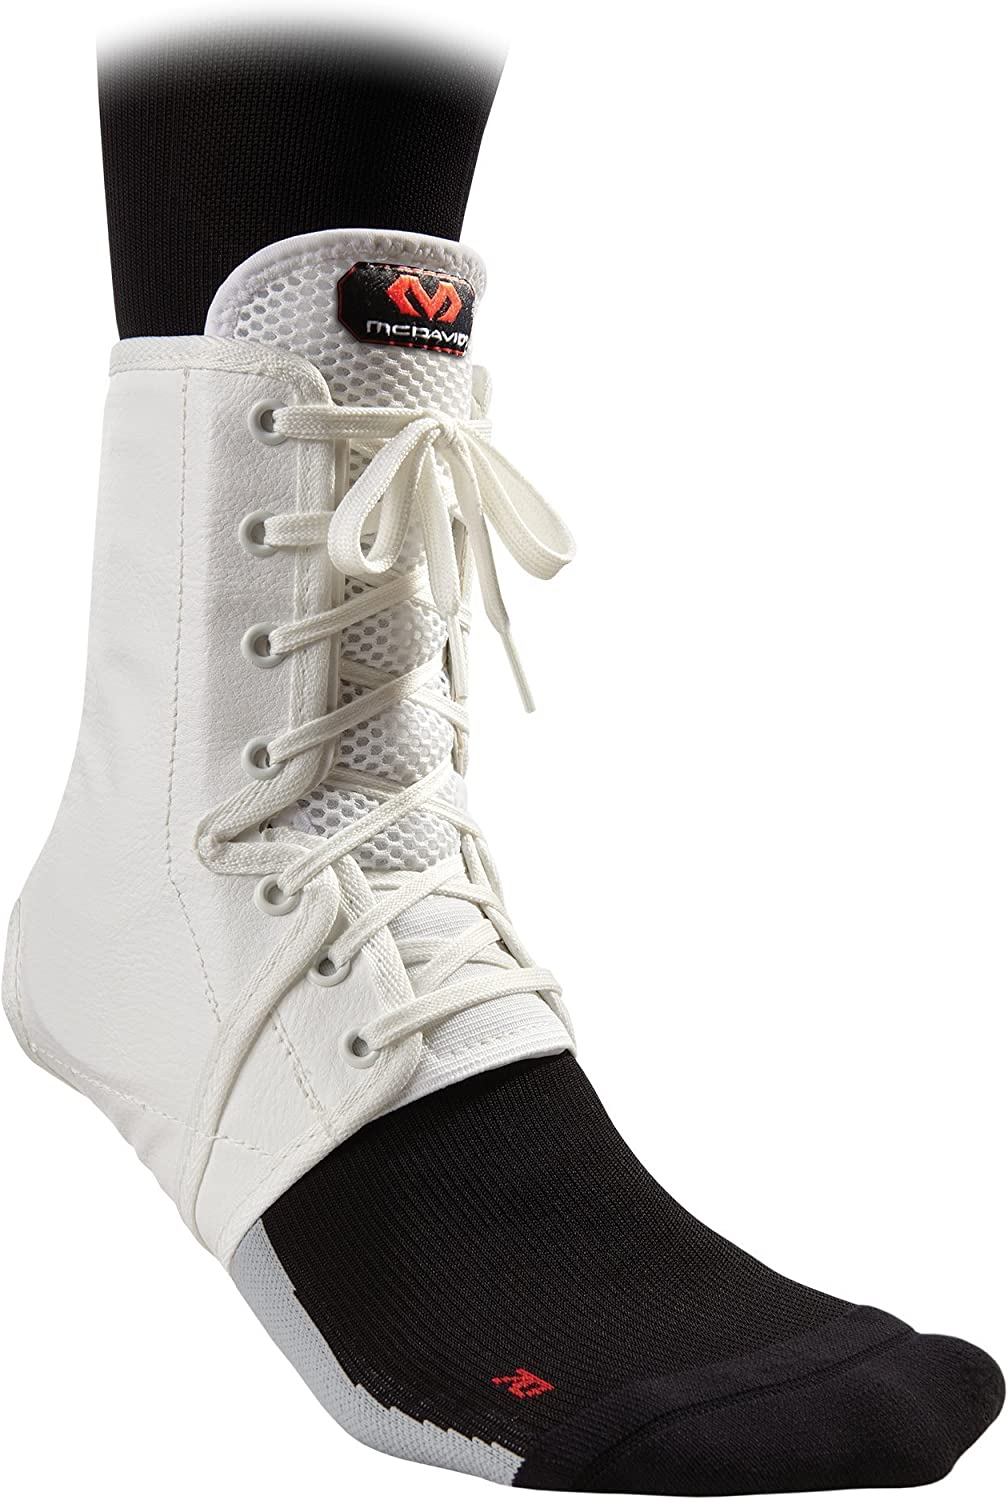 McDavid Ankle Brace Lace-Up w Strength Maximum Courier shipping free shipping Popular Su Inserts